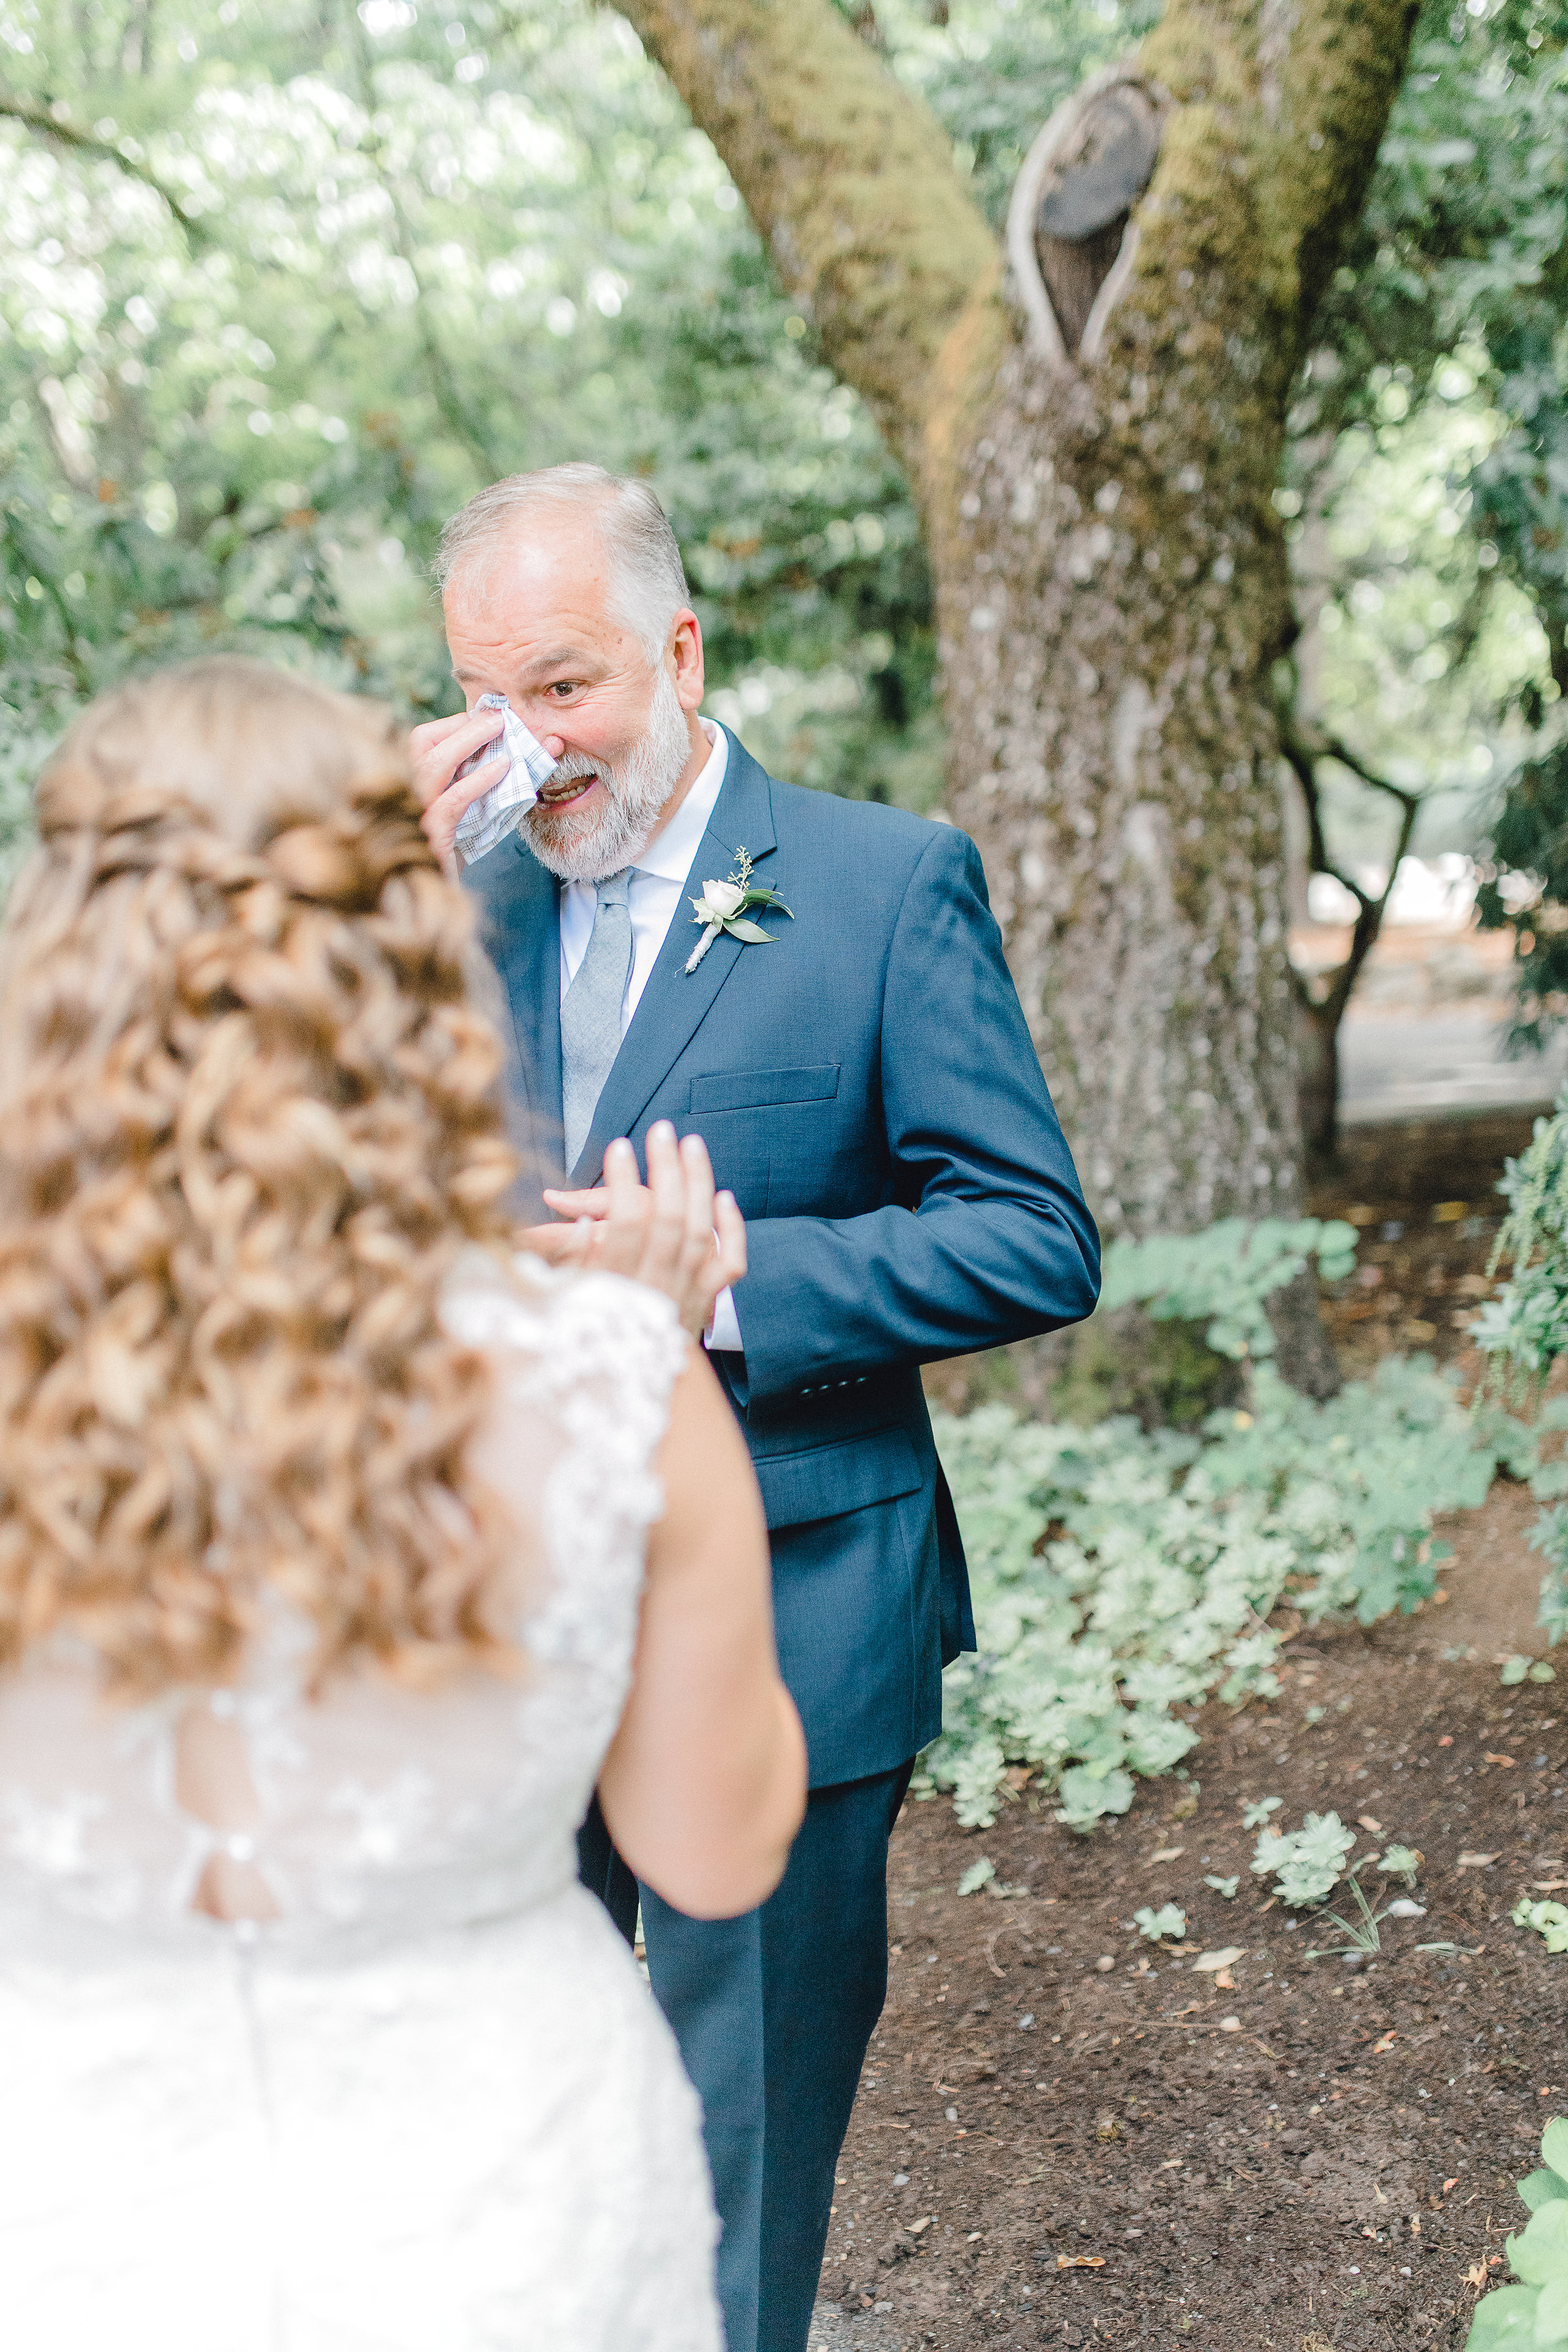 Seattle wedding, Washington wedding, bride and groom, PNW wedding, wedding inspiration, Seattle bride, first look, father daughter first look, dad first look